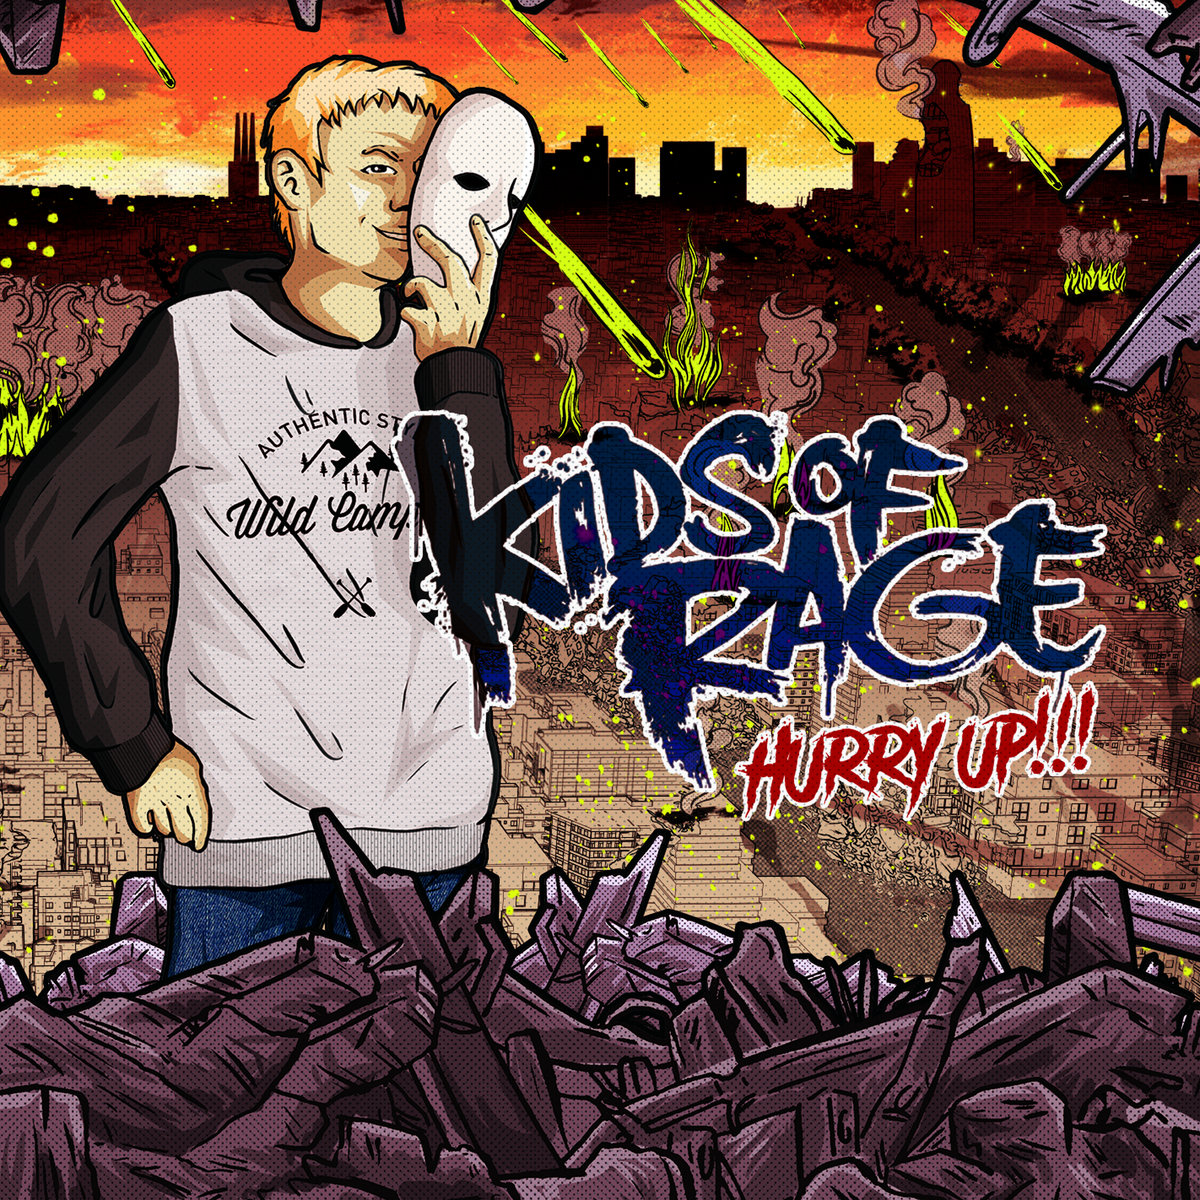 kids of rage hurry up!!